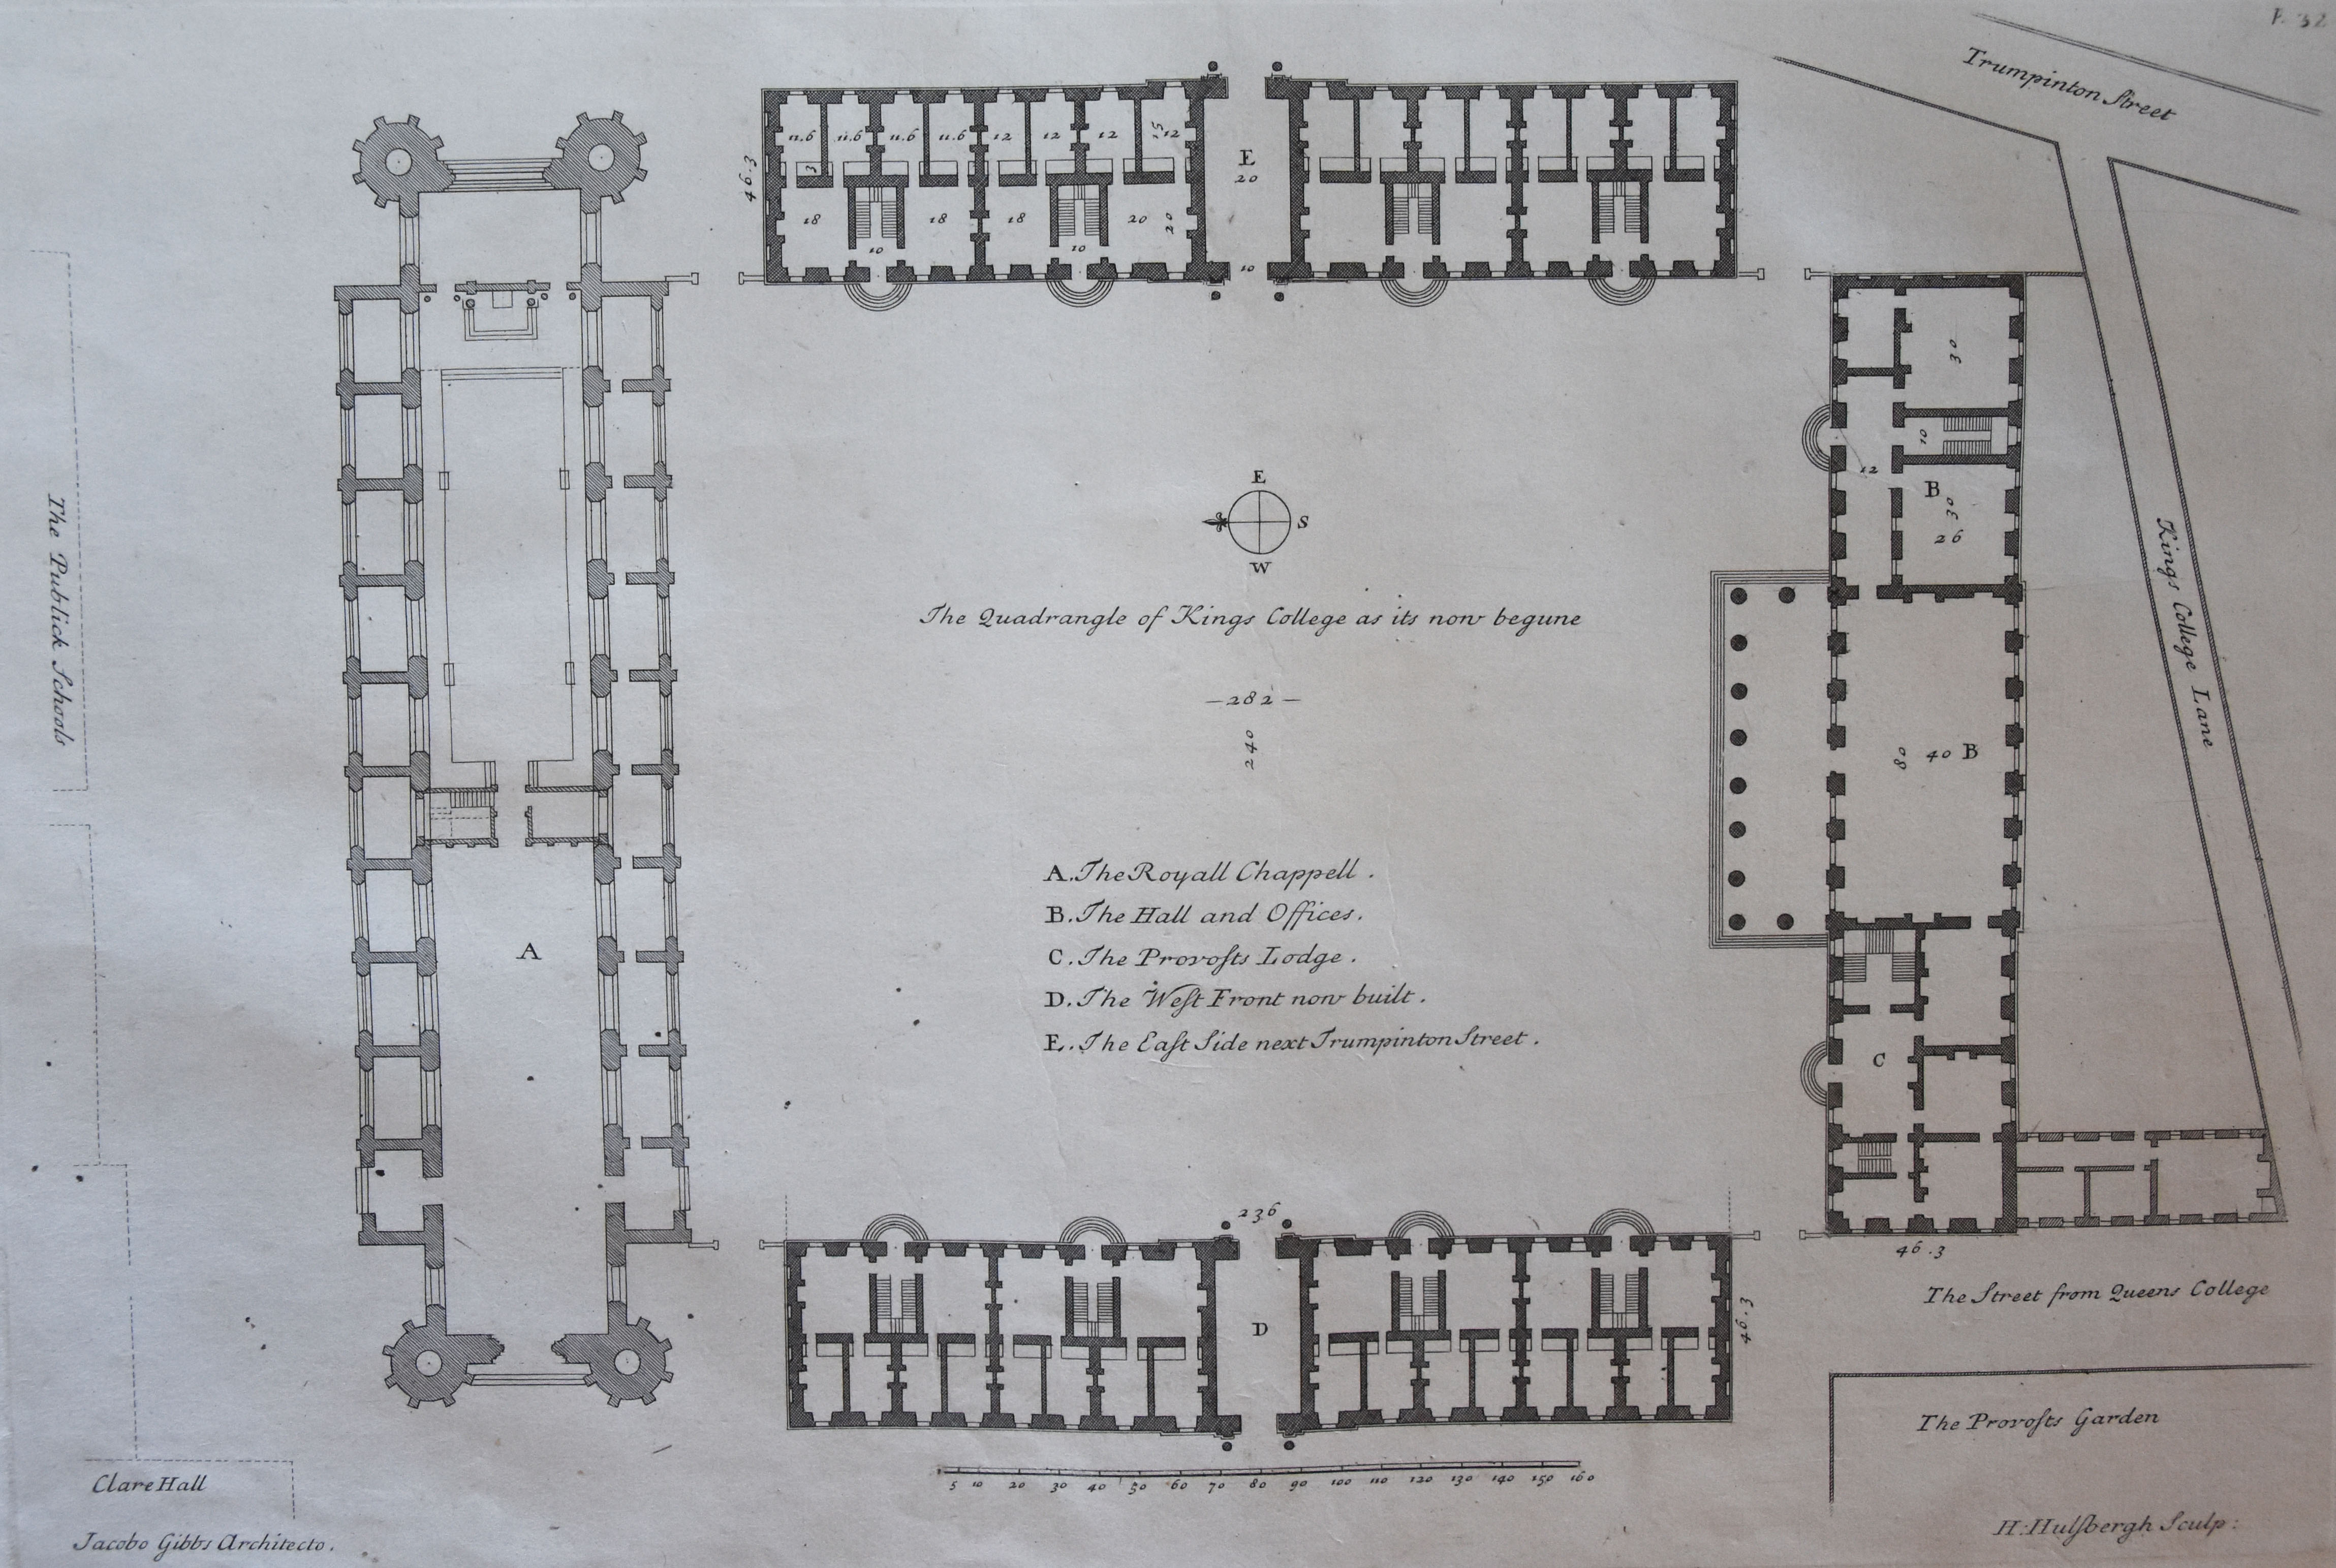 'The General Plan of the new Building'. [James Gibbs' Book of Architecture, plate XXXII]